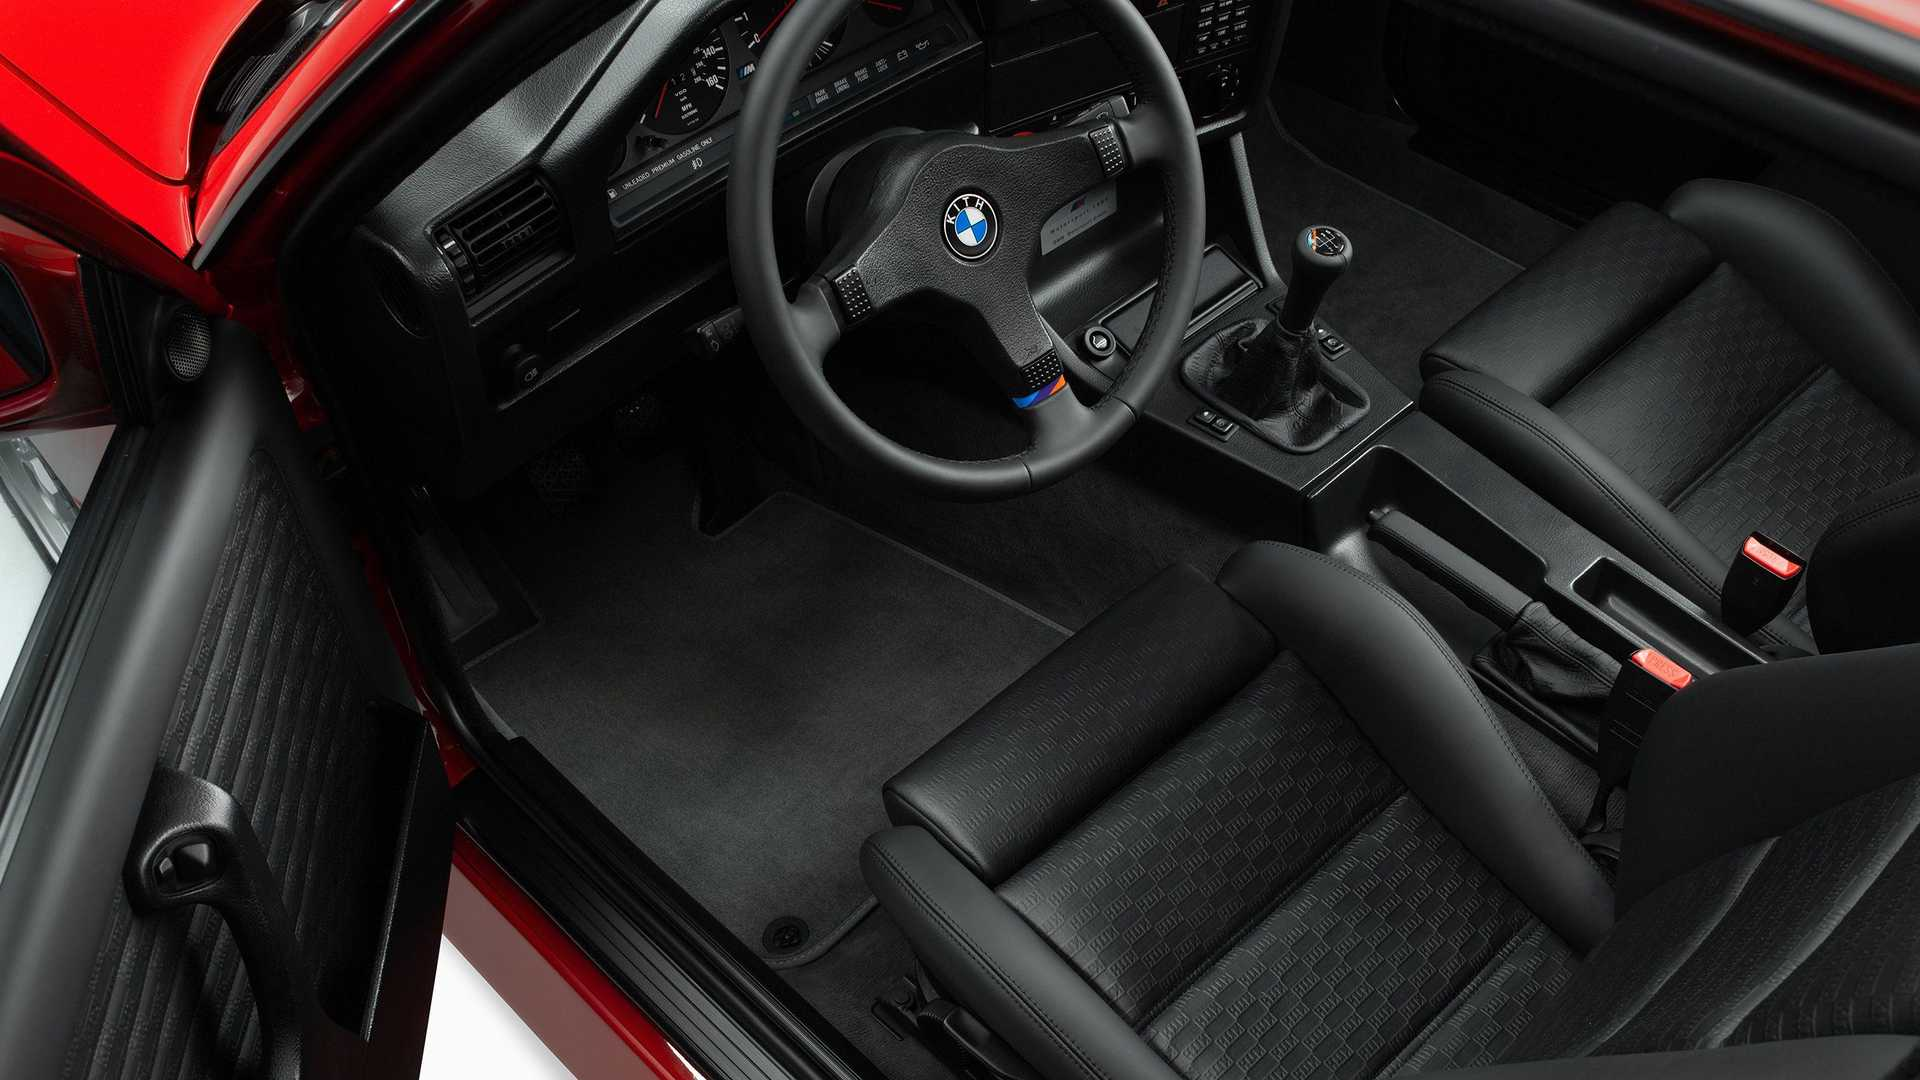 Bmw E30 M3 Receives Full Restoration With Bespoke Interior From Kith